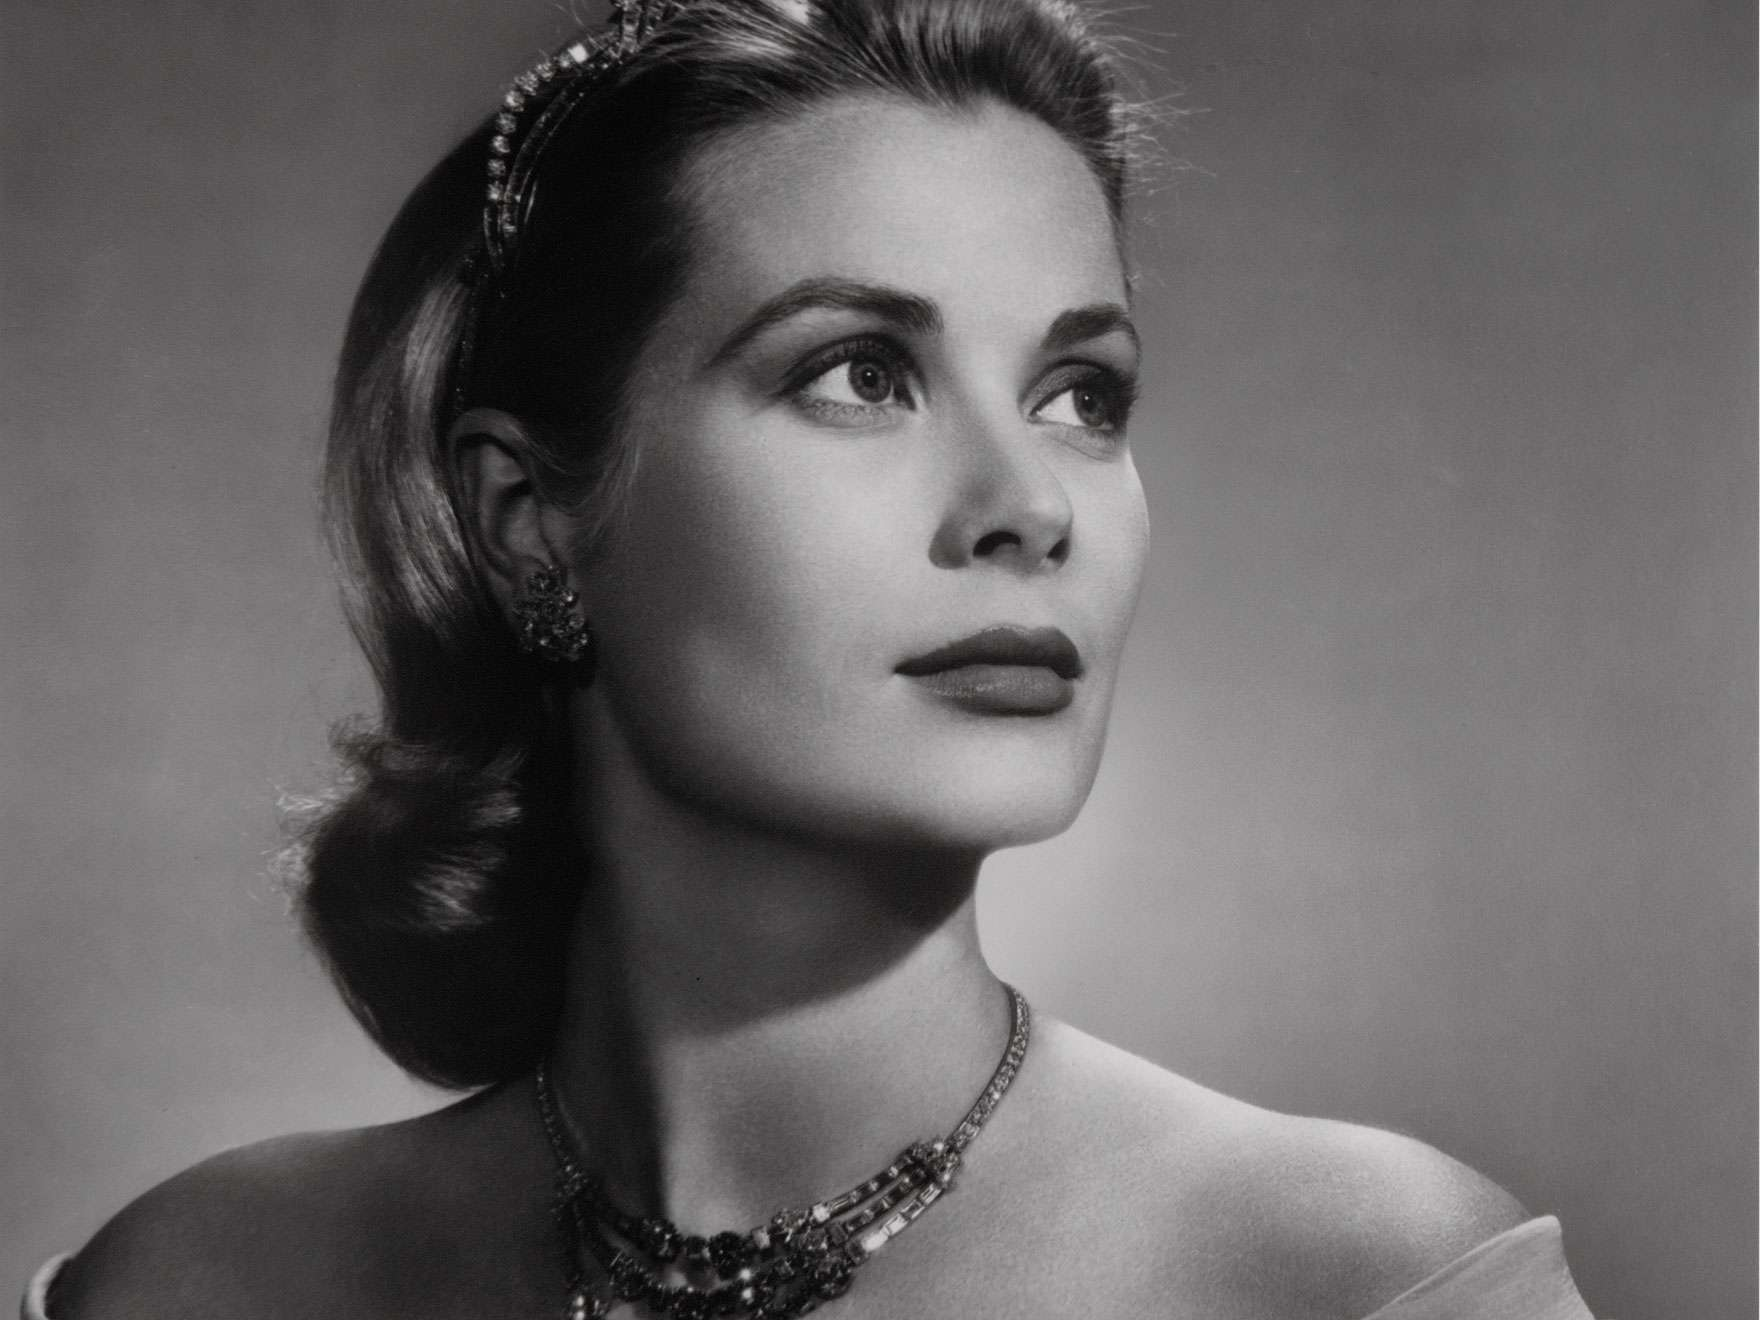 Black and white photographic portrait of Grace Kelly, Princess Grace of Monaco, 1956.